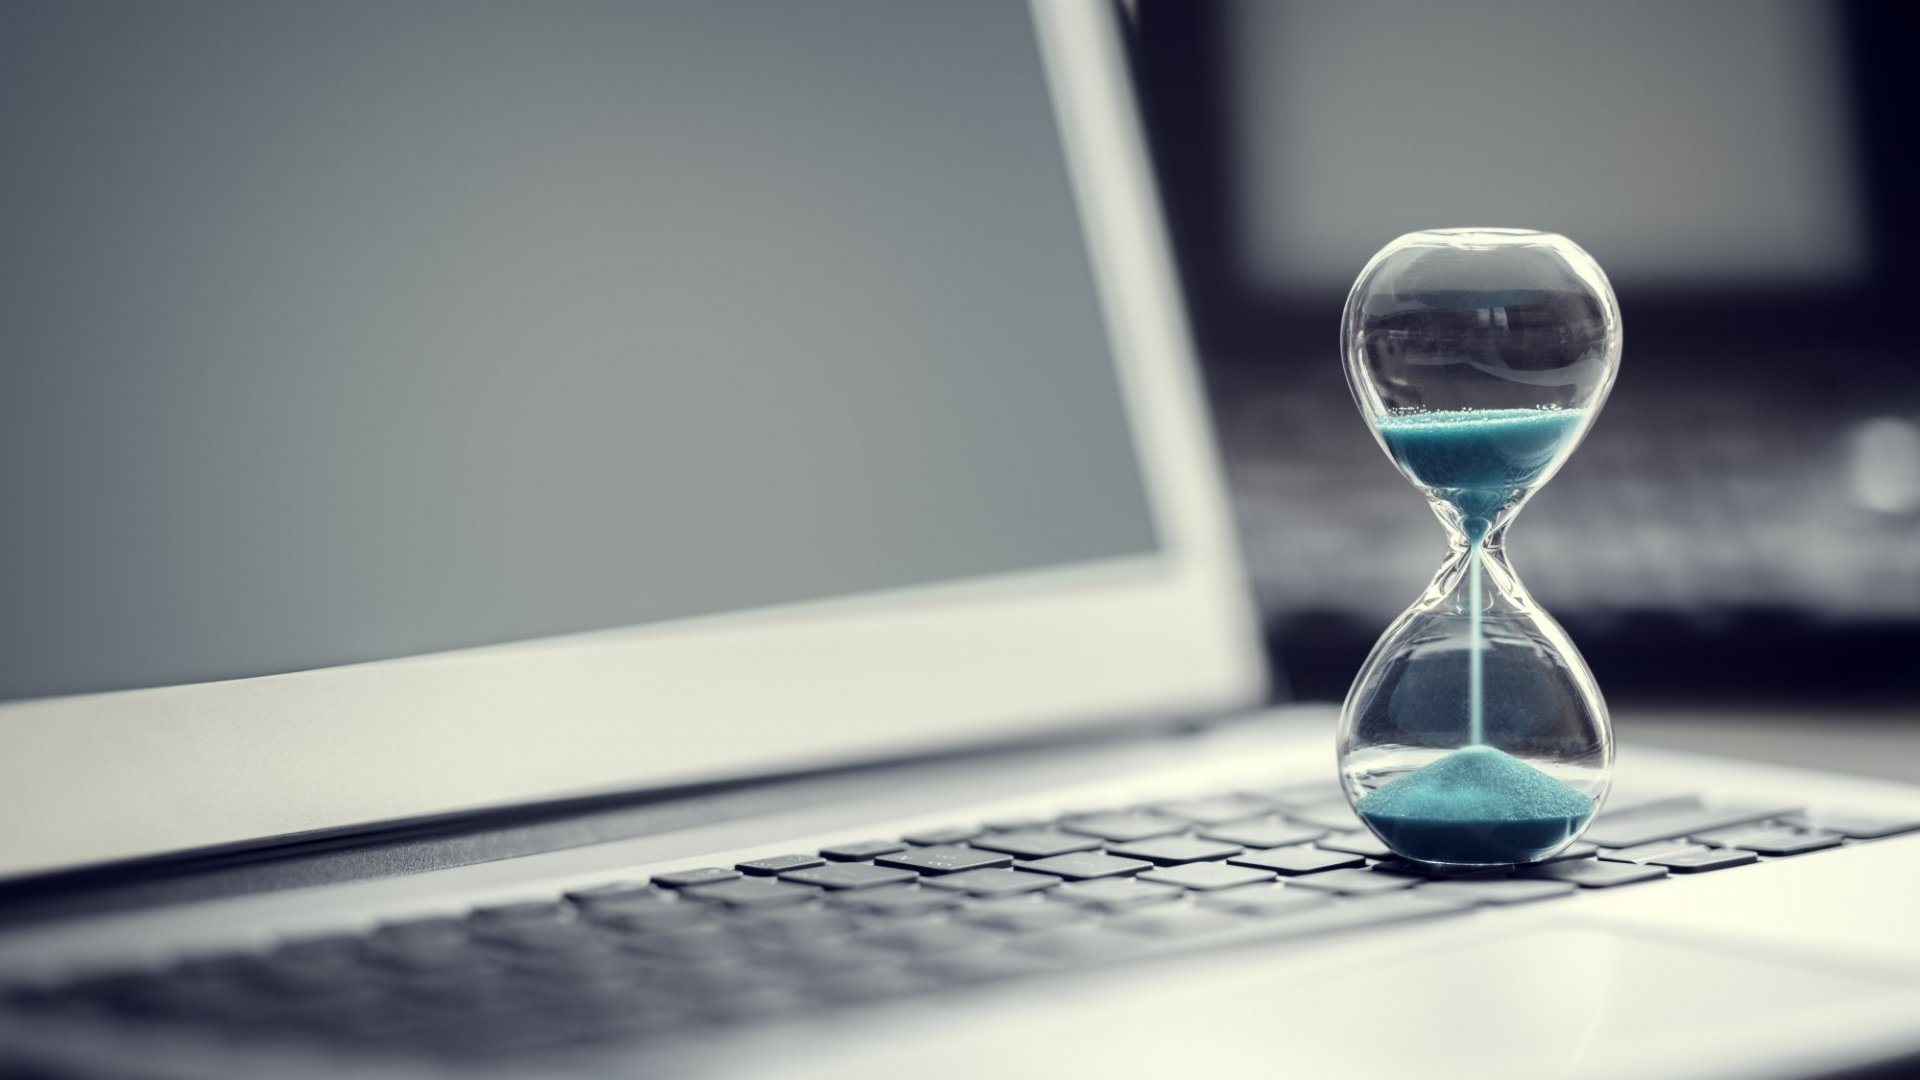 5 Things Employees Wish They Had Time For